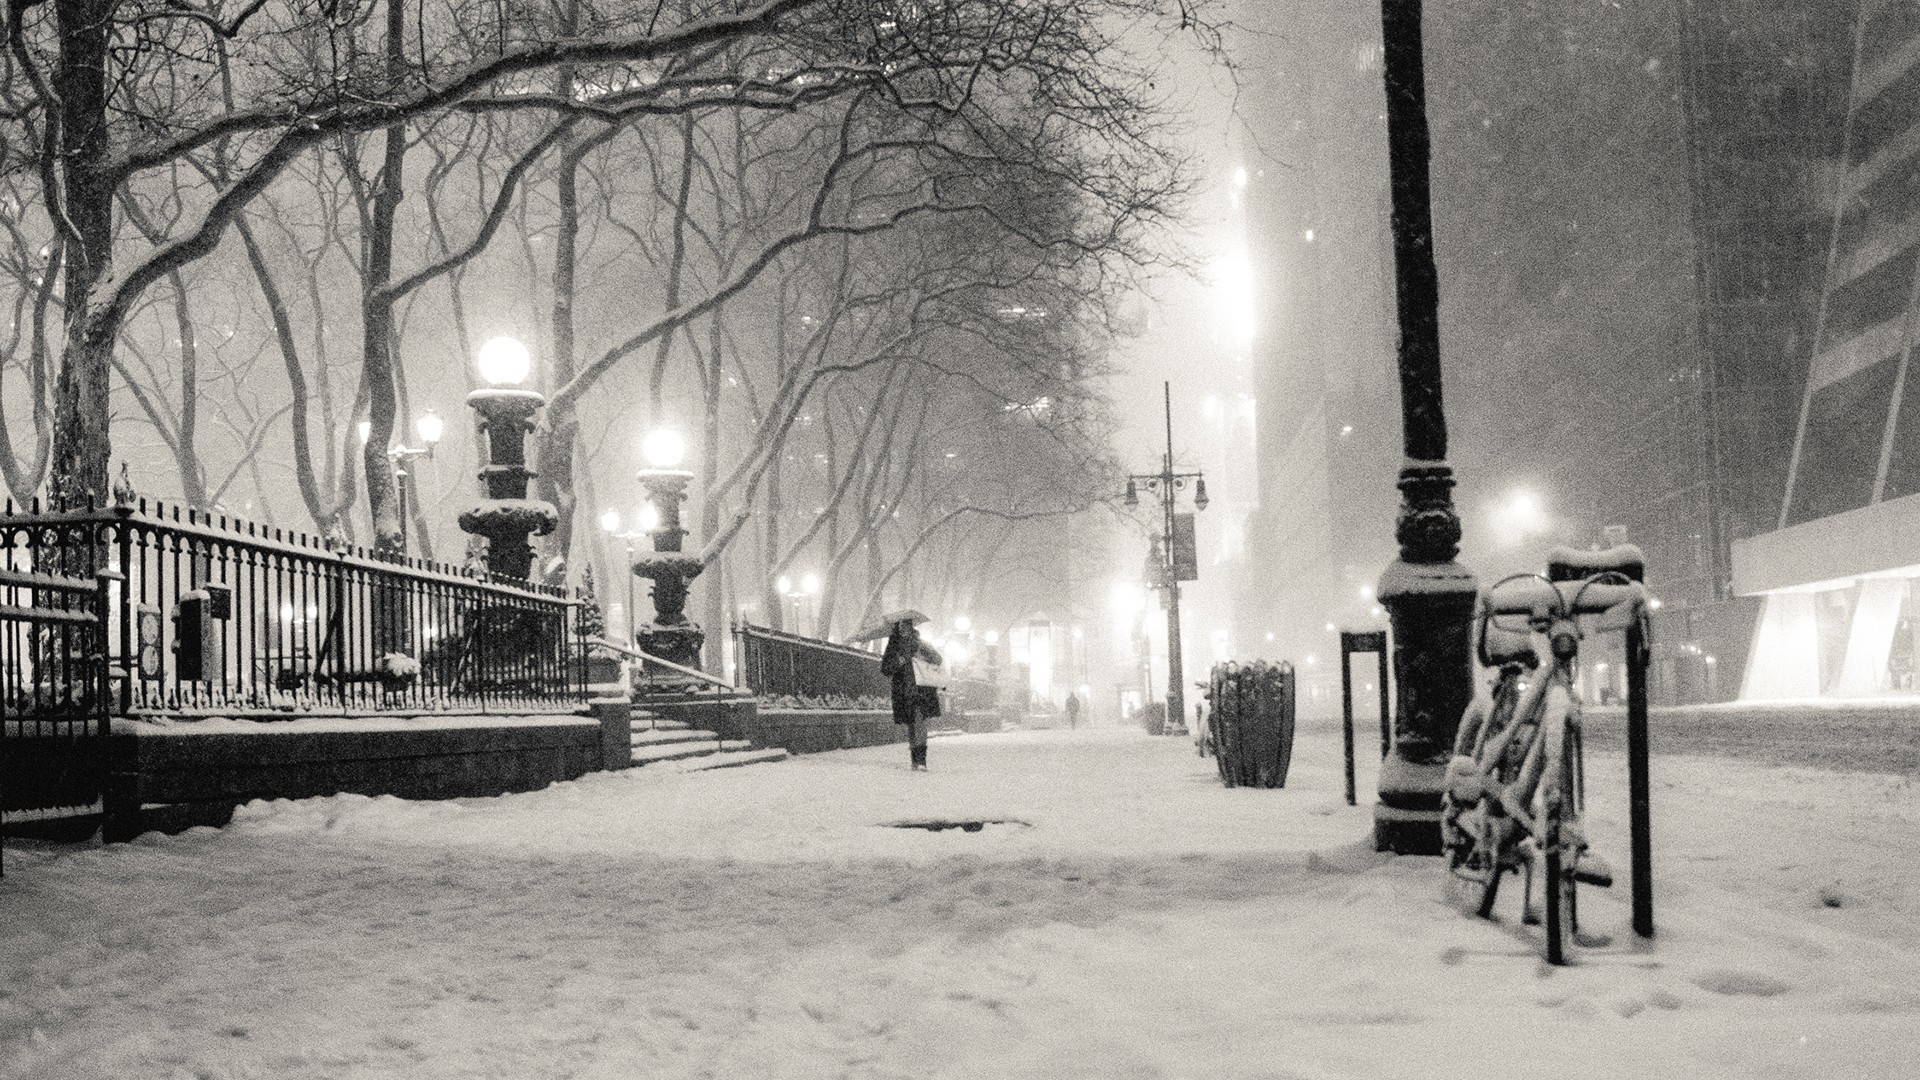 Wallpapers :: black and white, winter, snow, New York City, monochrome